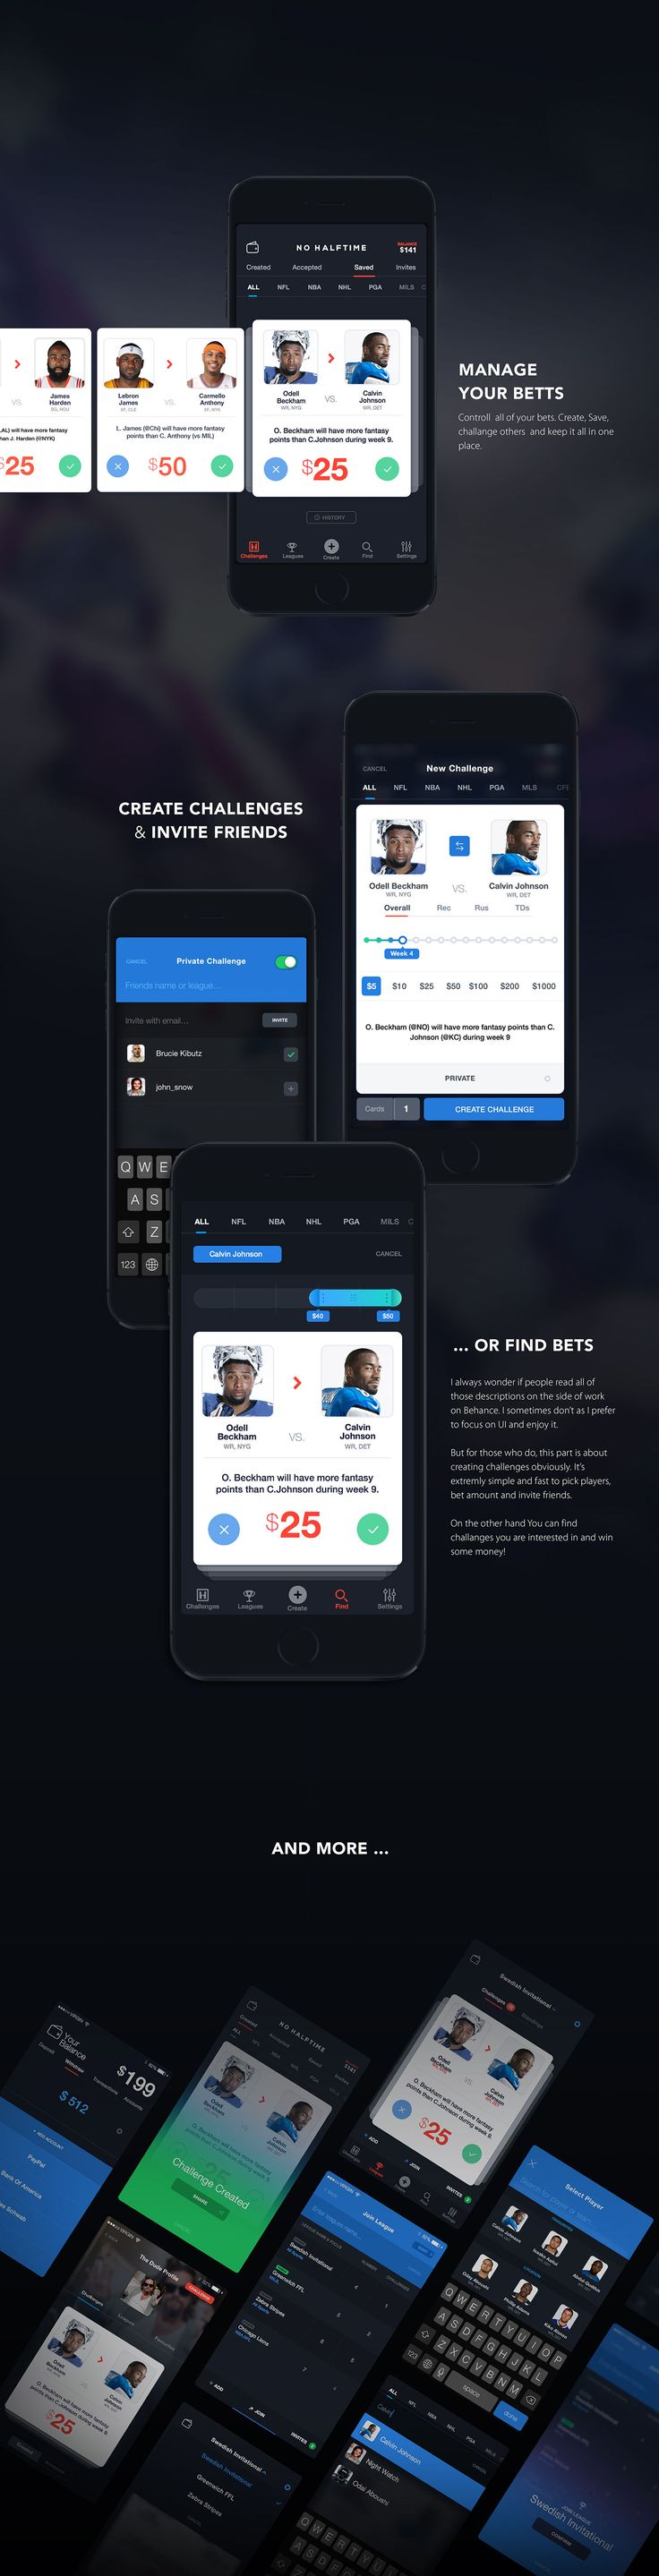 NO Halftime Fantasy Sports Bets on Behance